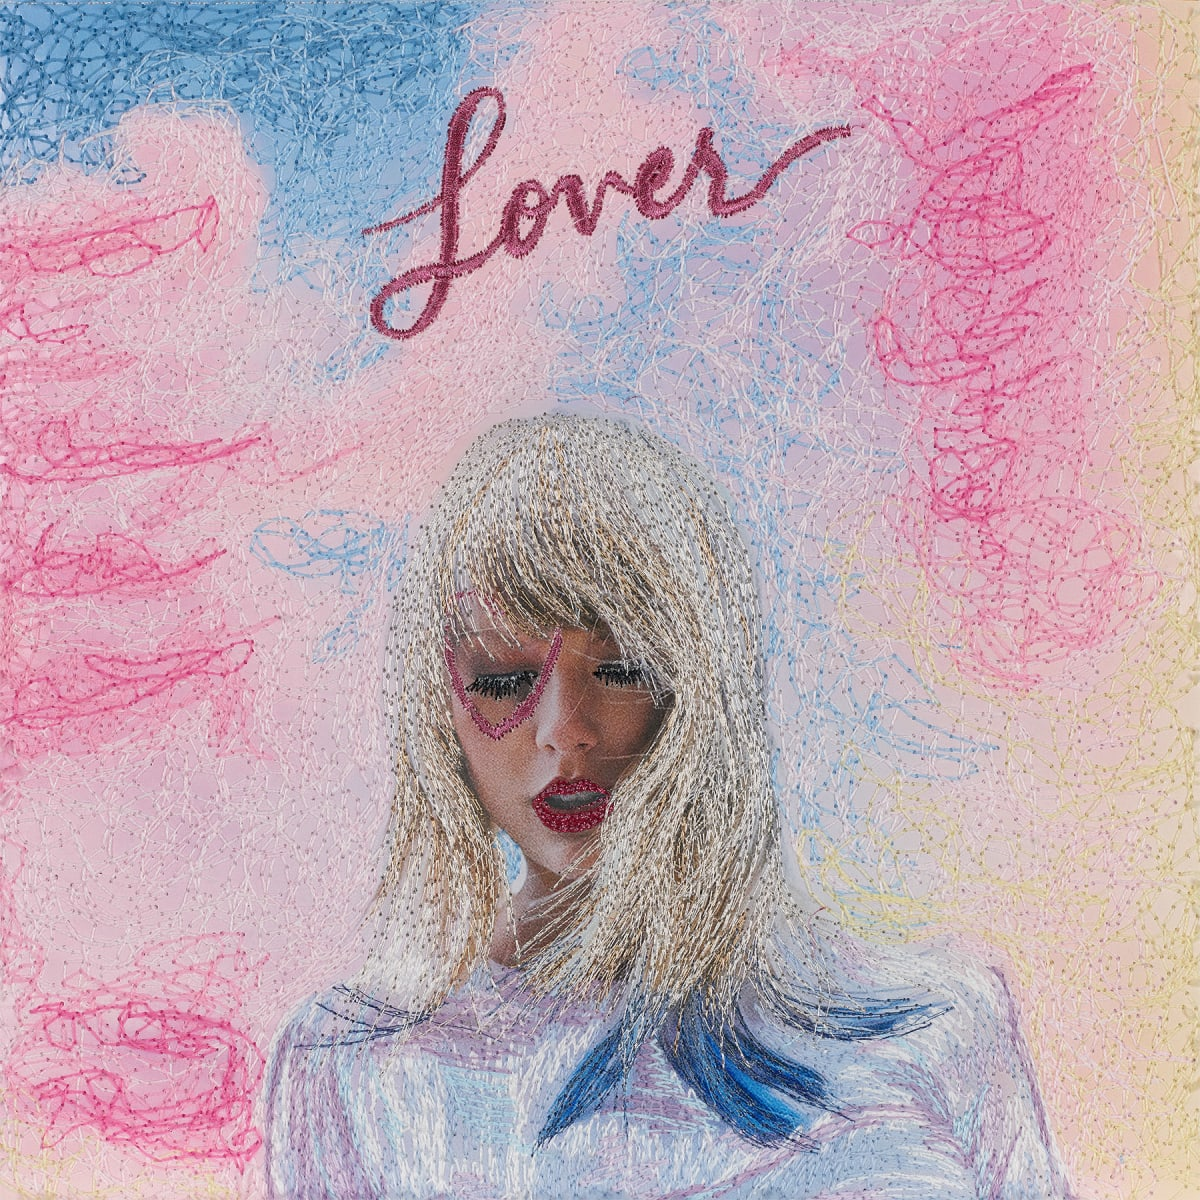 Stephen Wilson, Lover, Taylor Swift, 2019